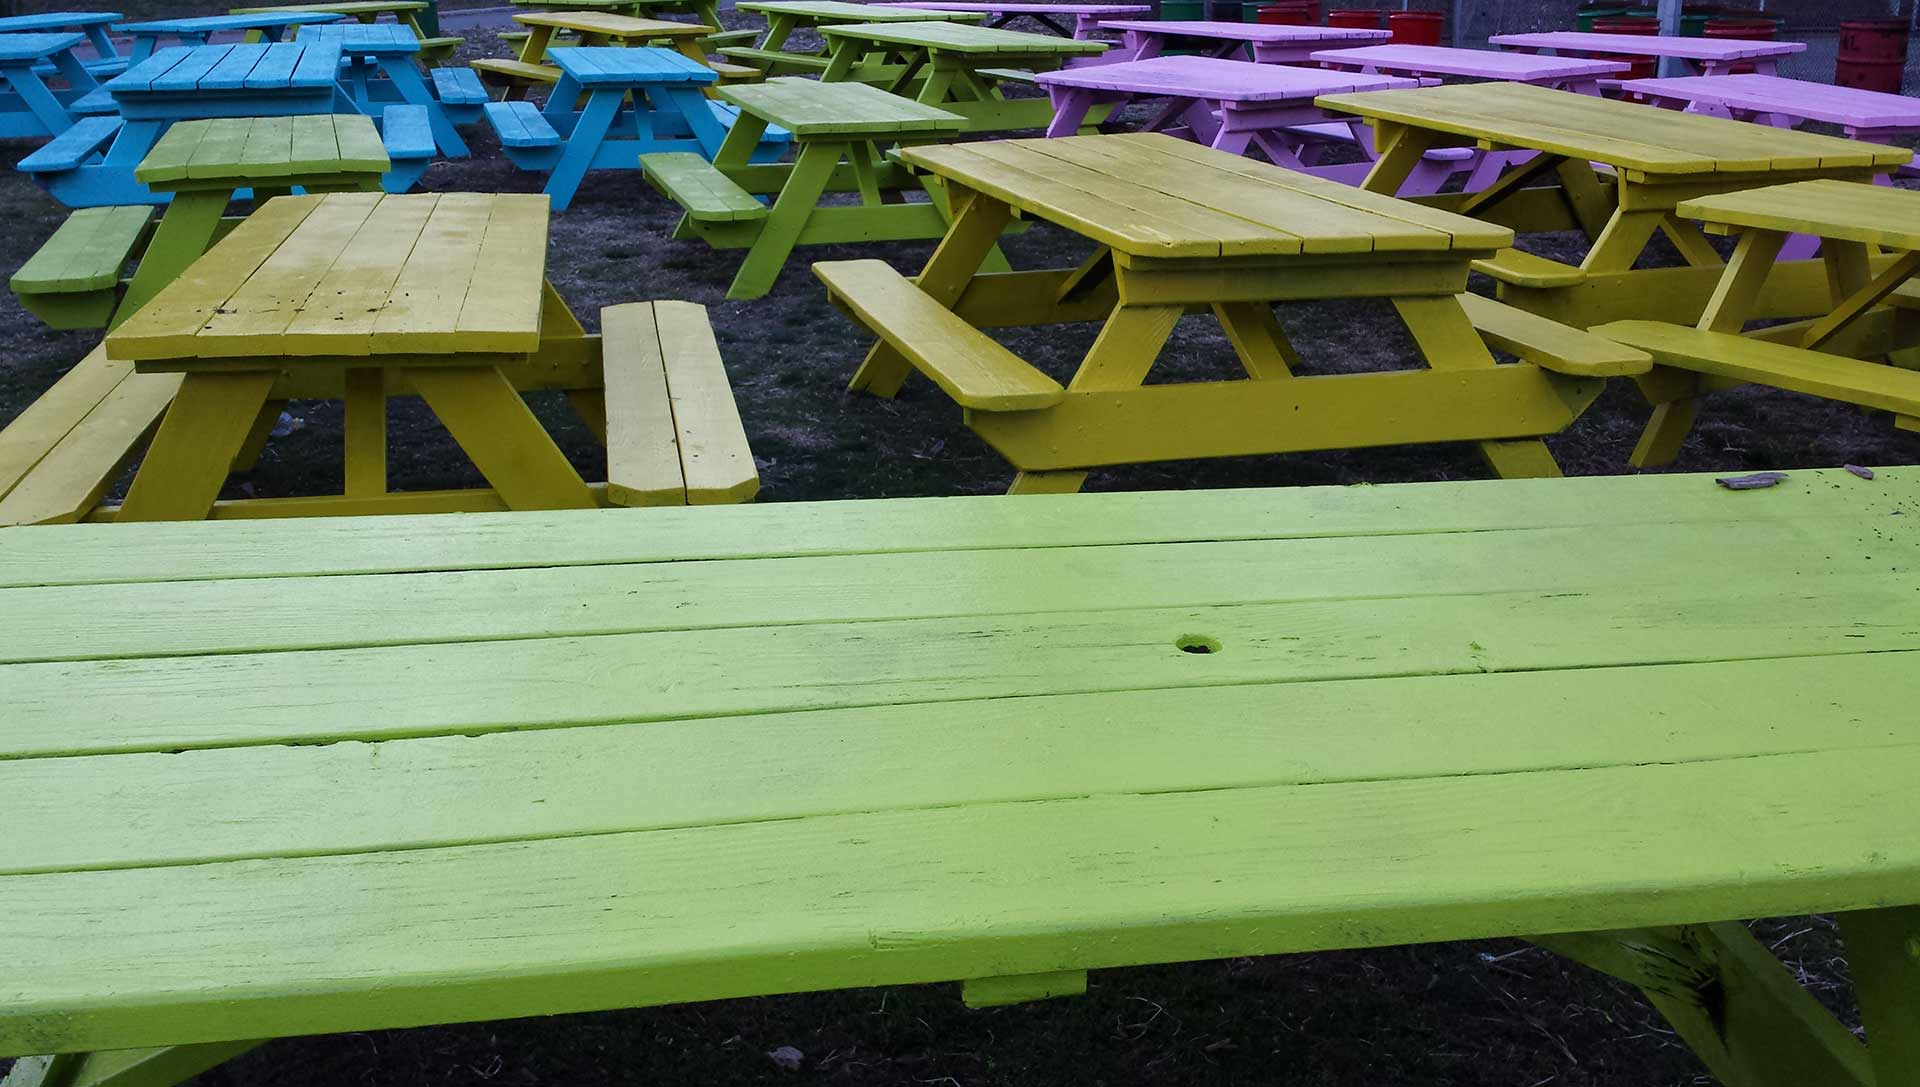 Tables-in-Park_Angle2